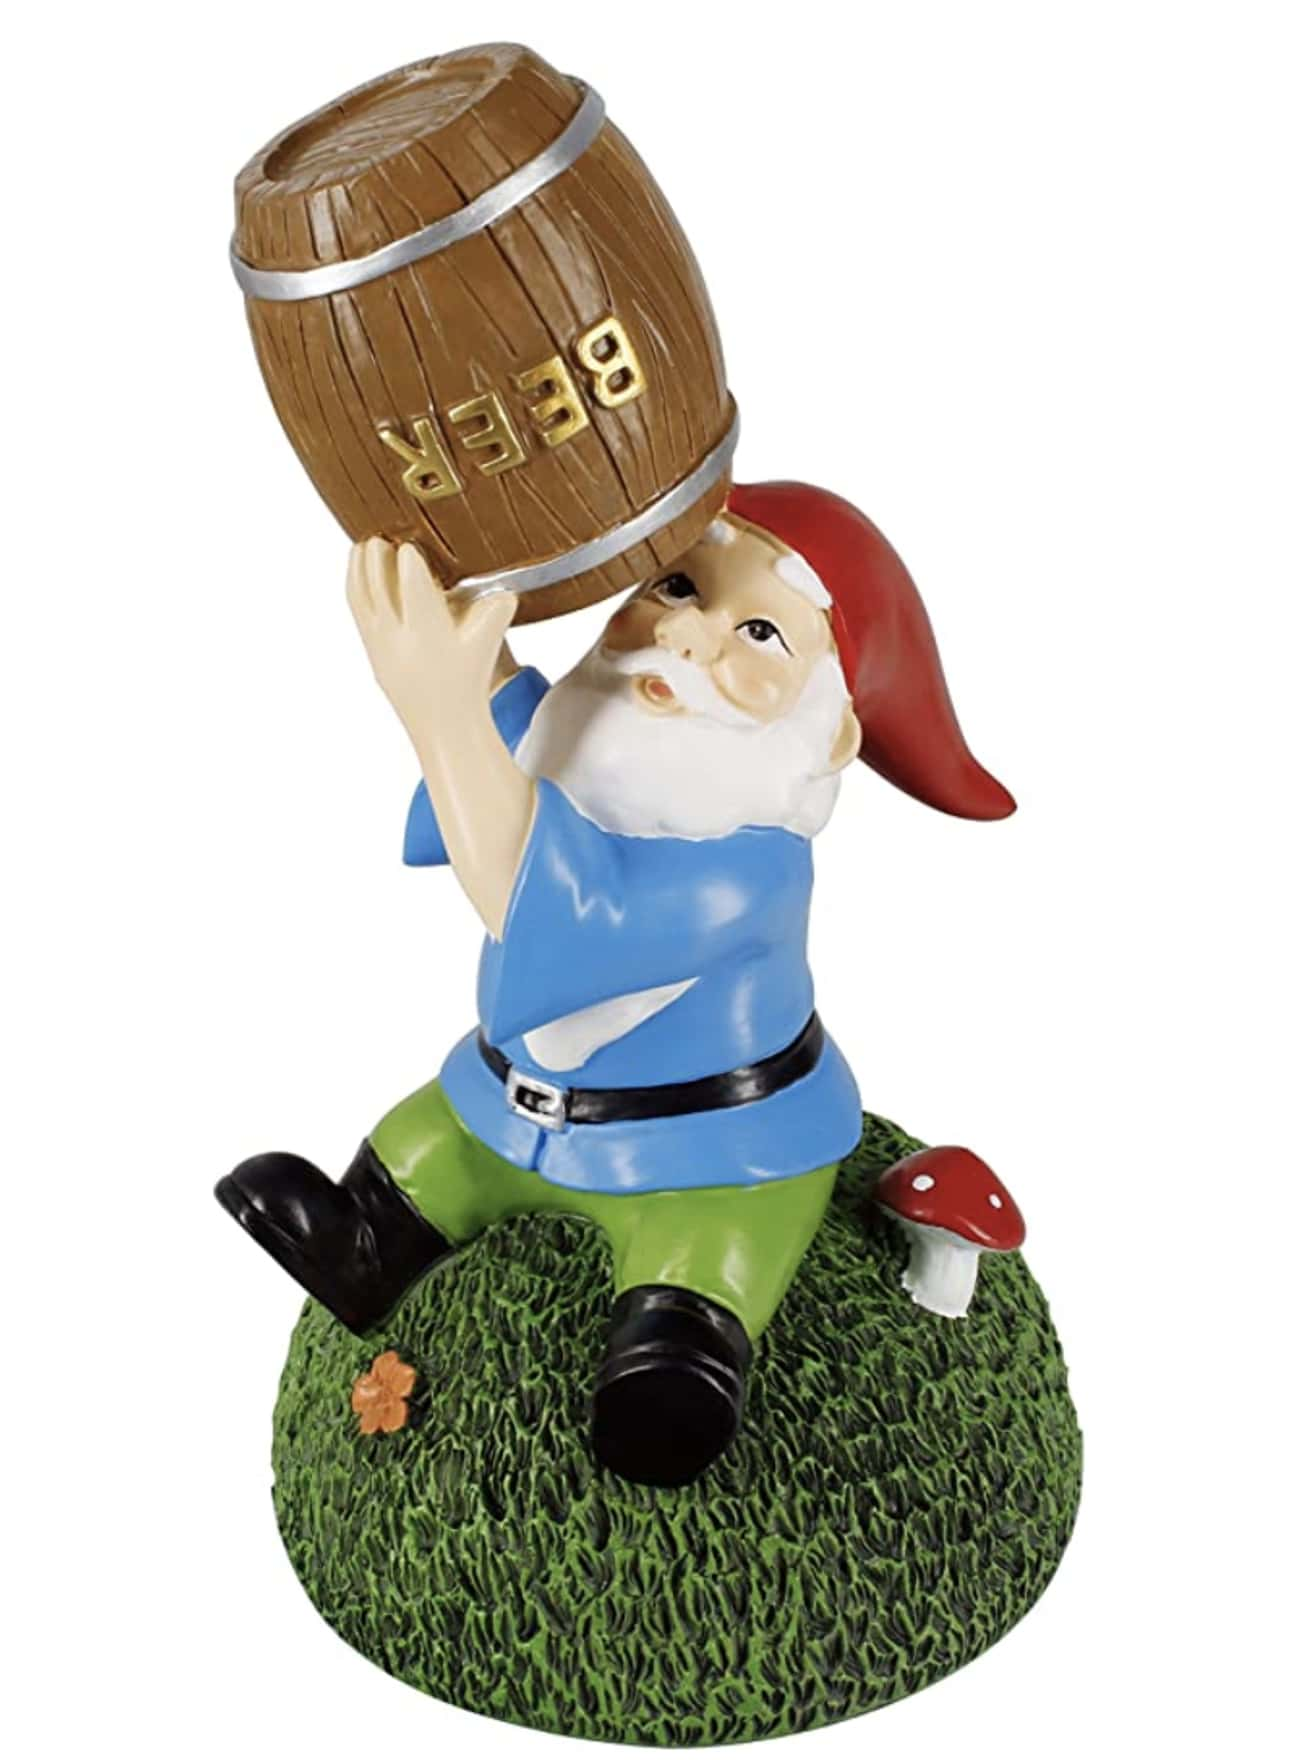 Party Gnome is listed (or ranked) 2 on the list 20 Cool Garden Gnomes To Spice Up Your Yard